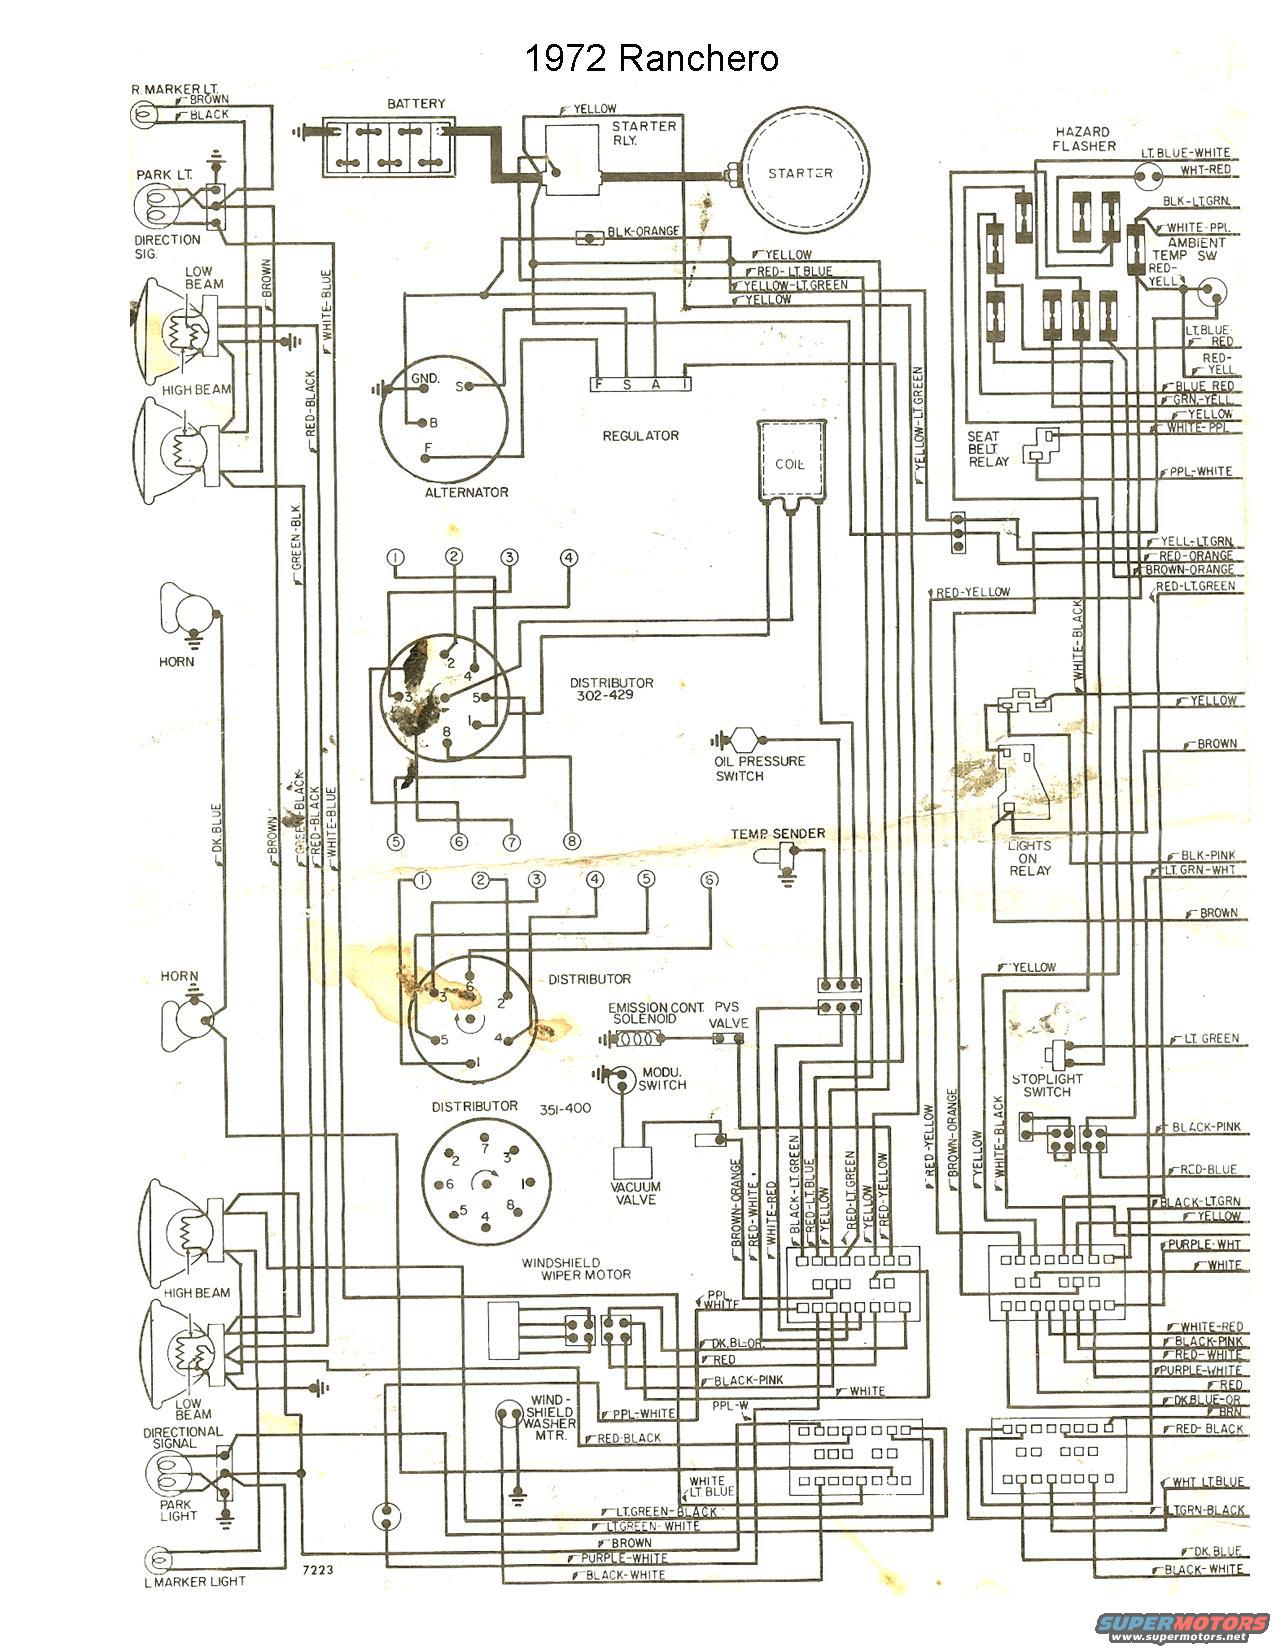 627785 1 on 1988 ford alternator wiring diagram